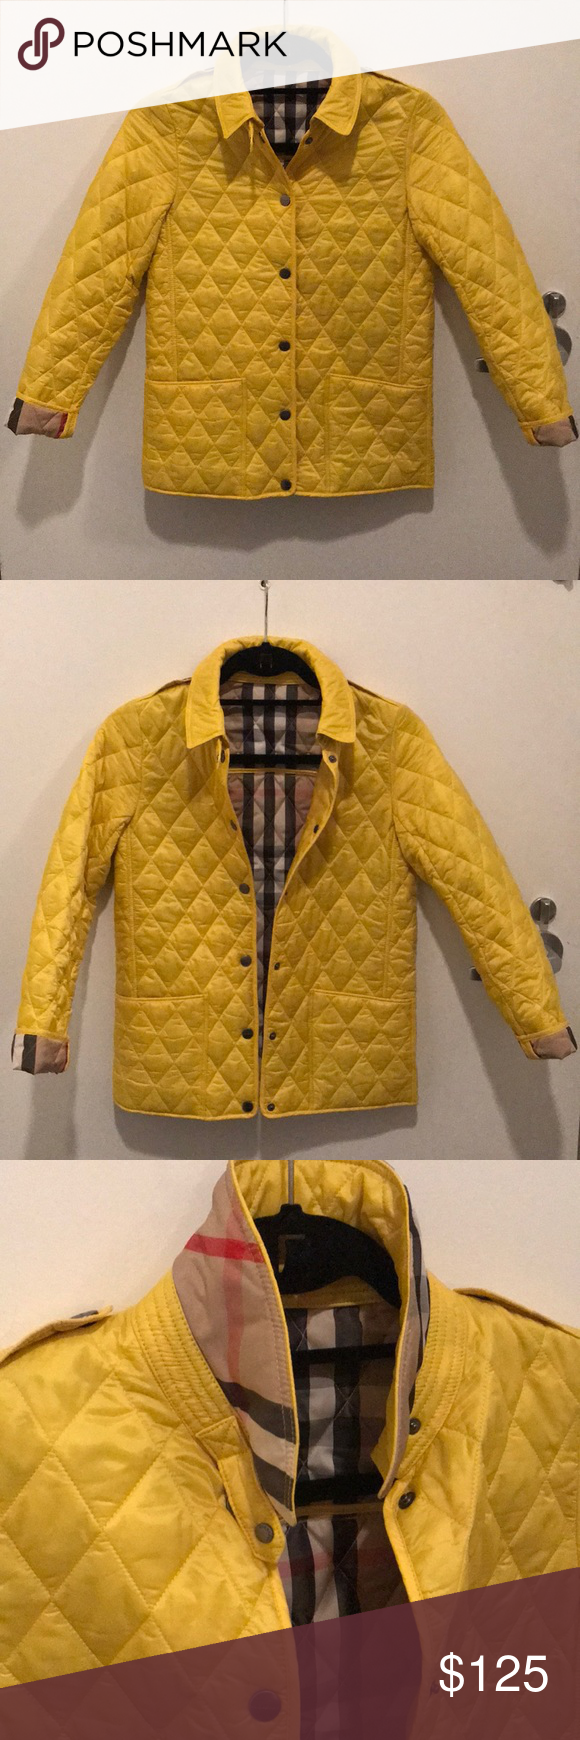 Burberry Childrens Quilted Coat Yellow Sz 12y My Posh Closet